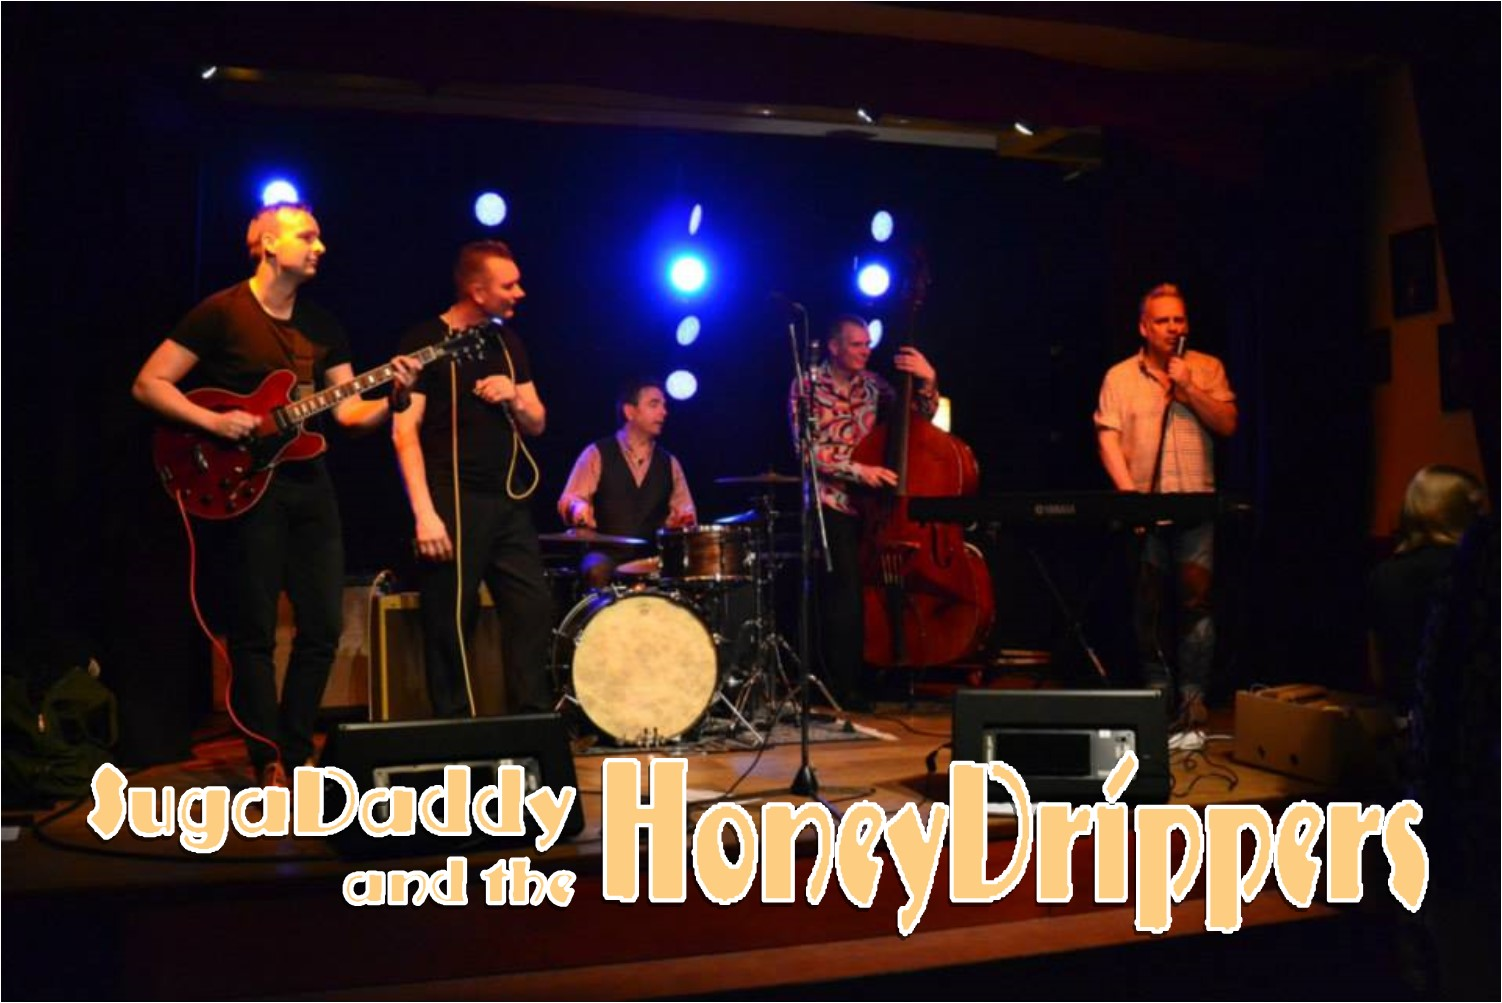 Sugadaddy & the Honeydrippers